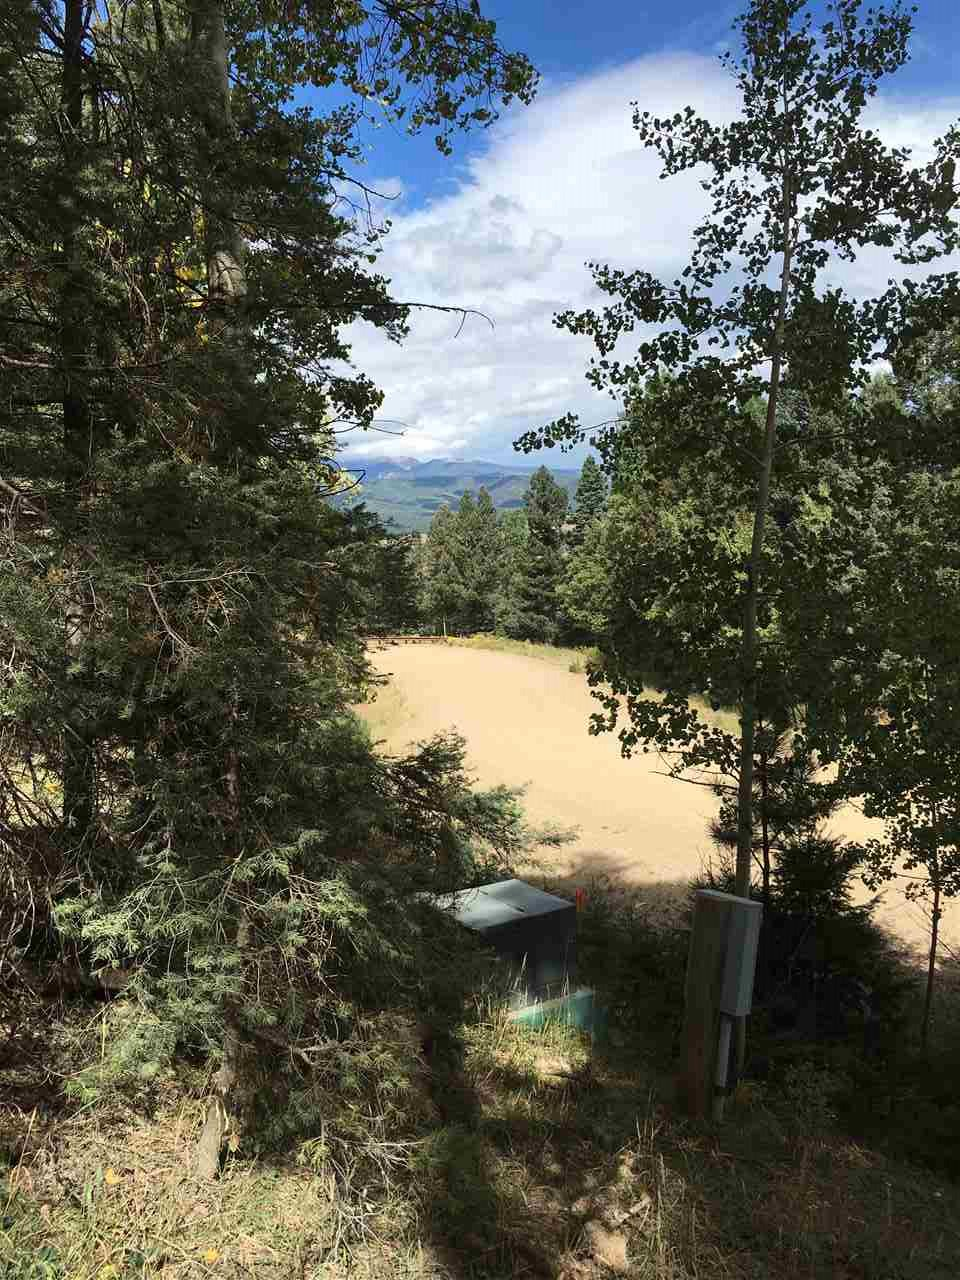 Close to ski area.  Some grade to property but location is key with this property. Beautifully treed.